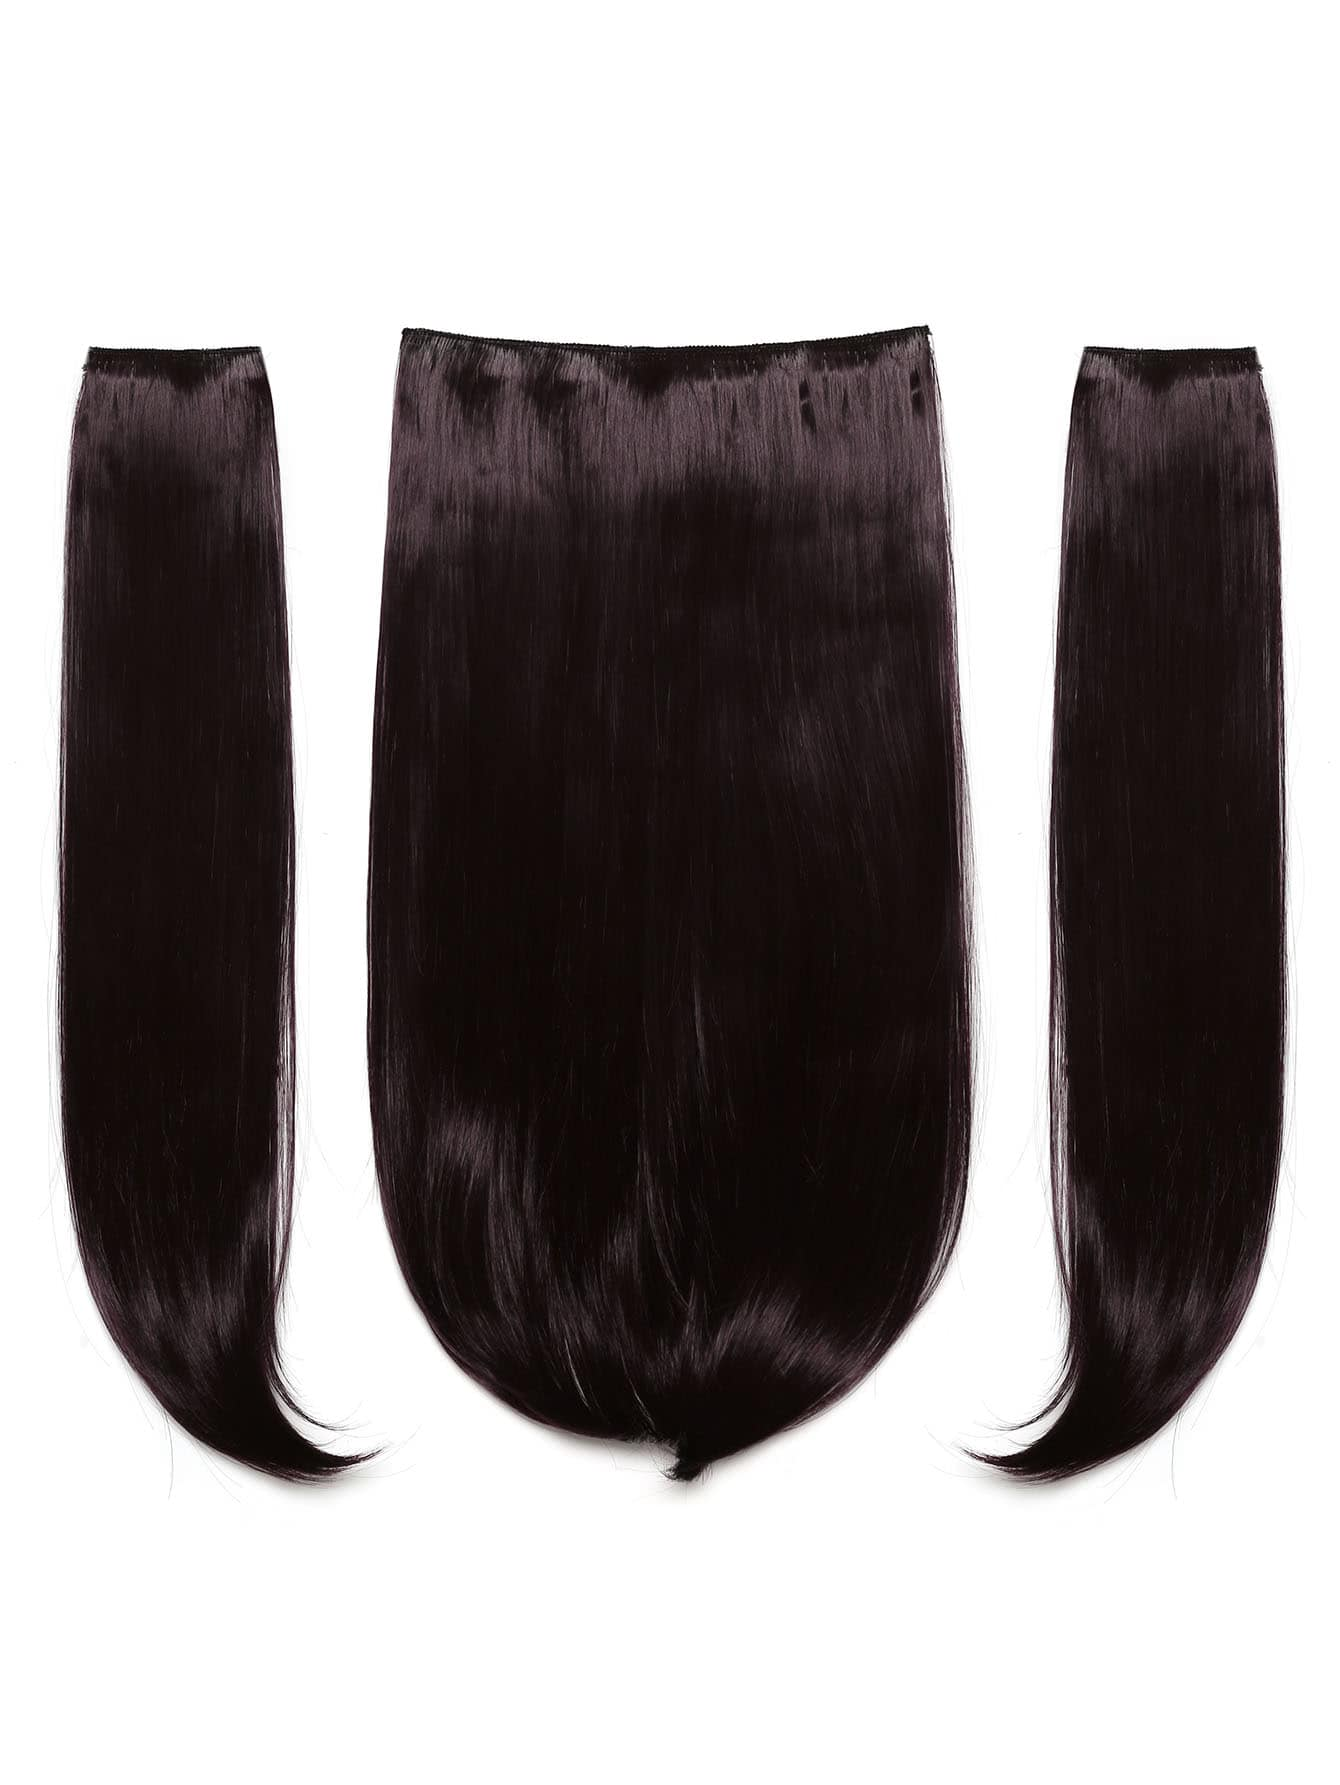 цена на Plum Clip In Hair Extension 3pcs